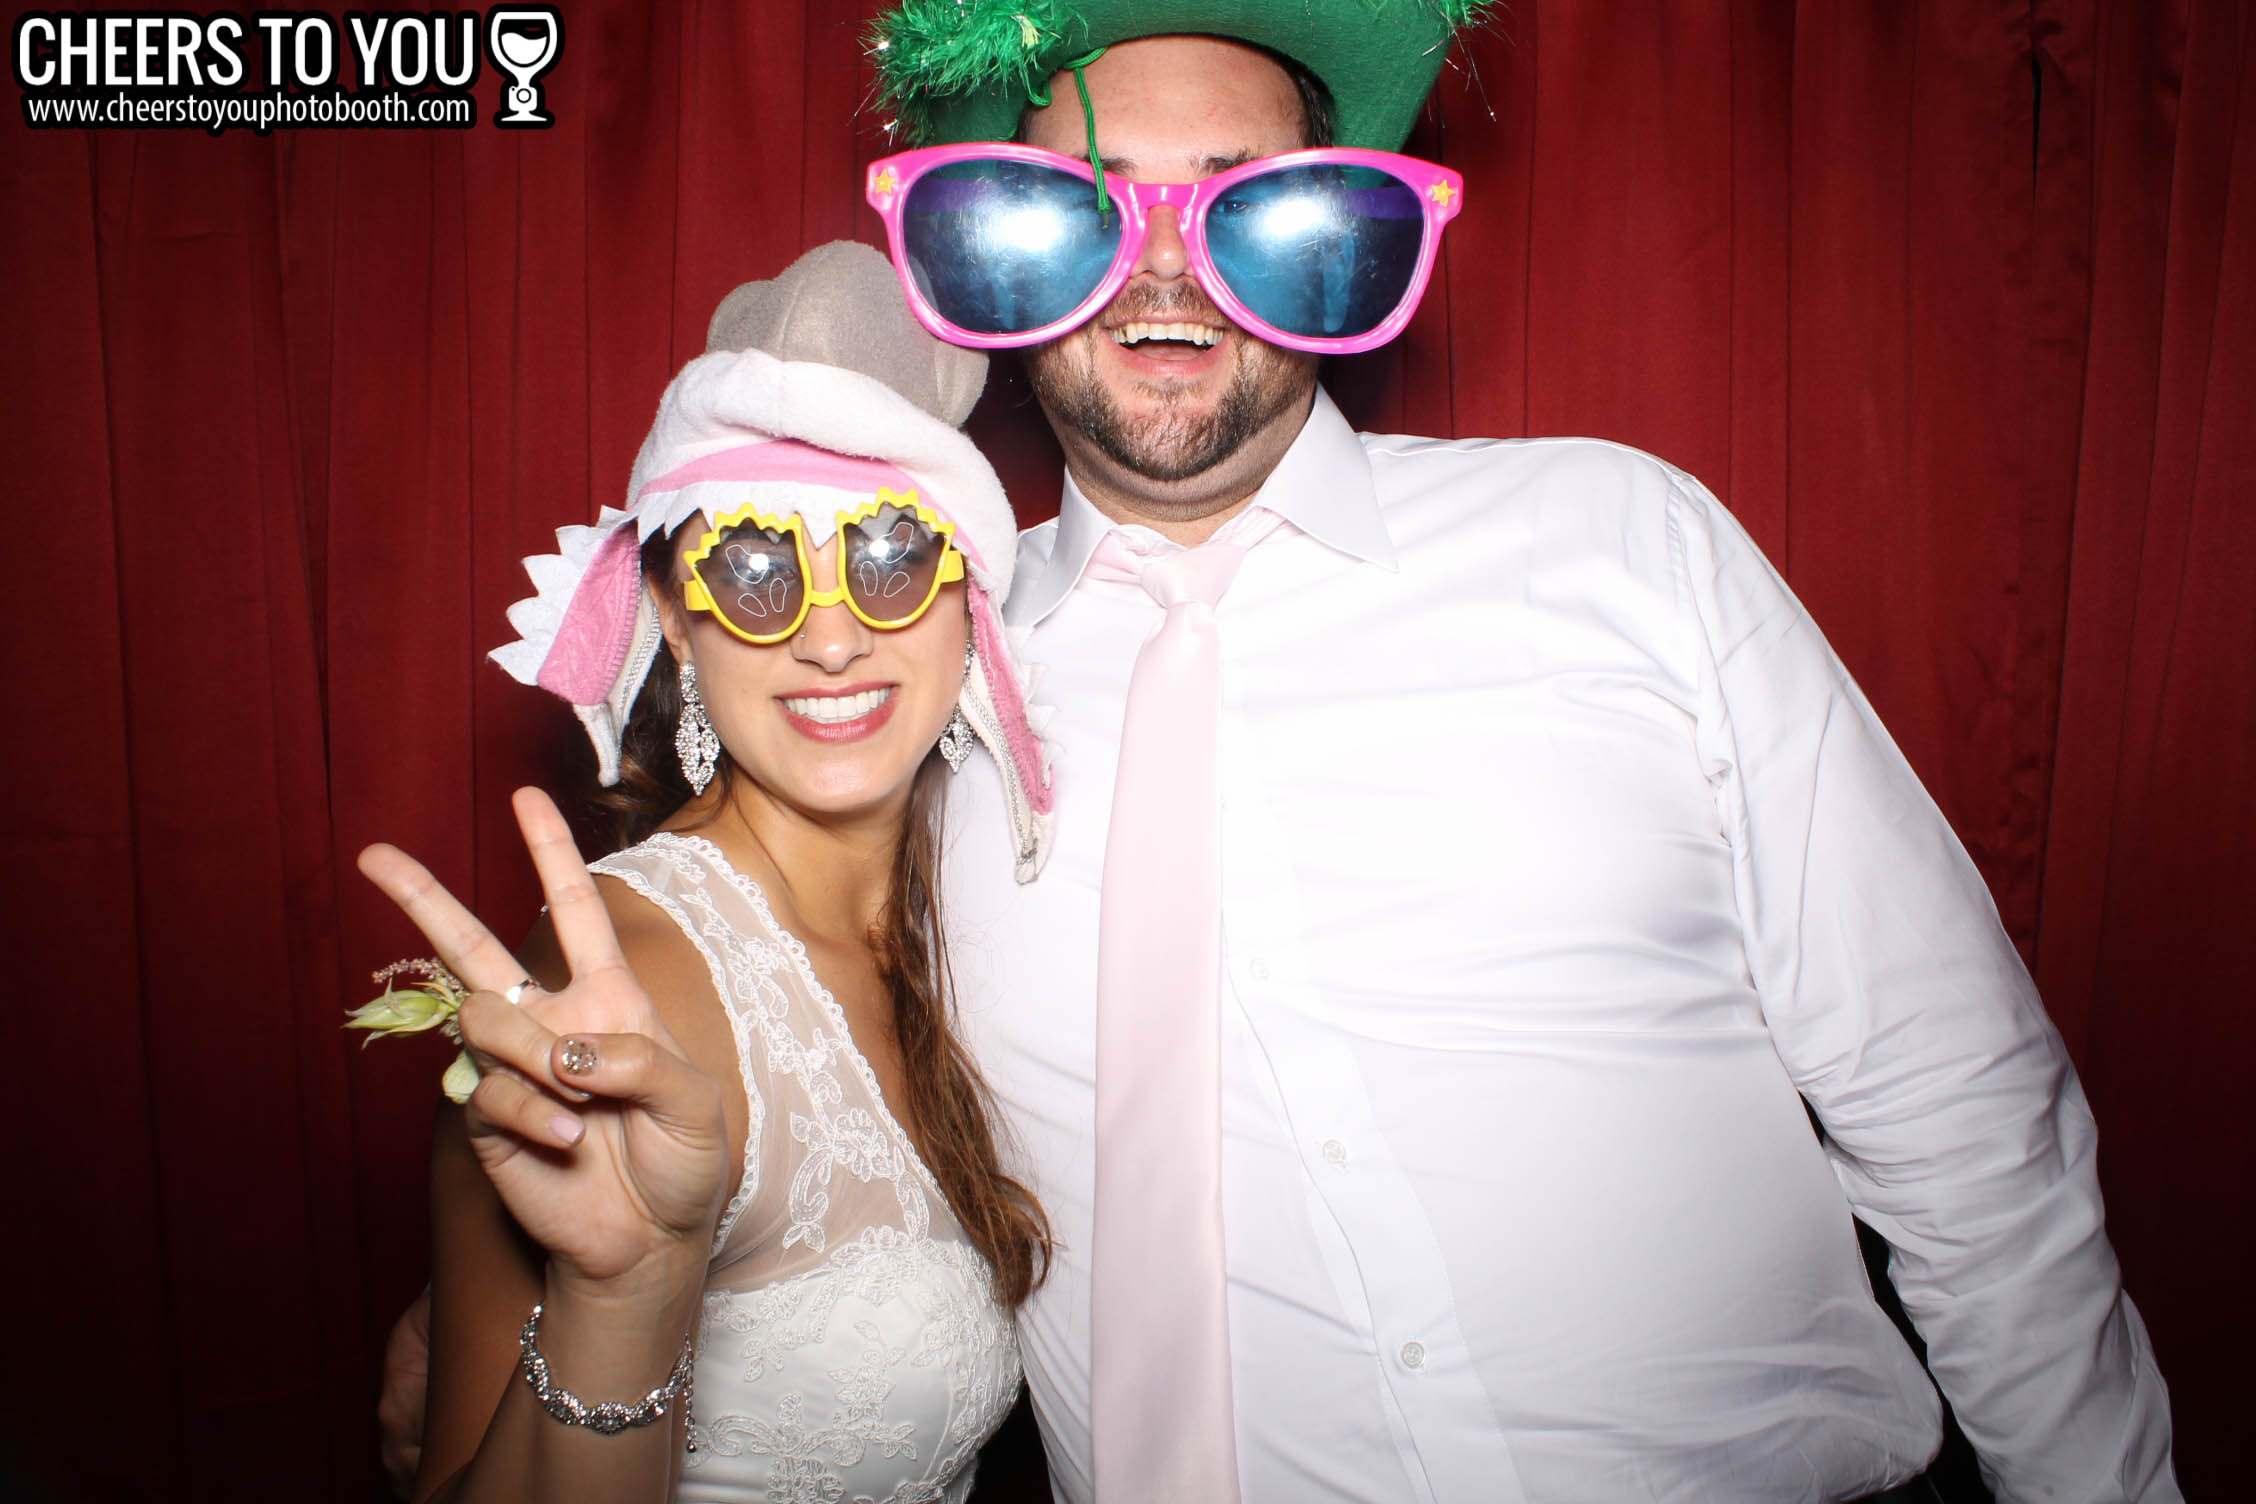 Cheers To You Photo Booth | Huntington Beach, CA | Loretta & Justin's Wedding